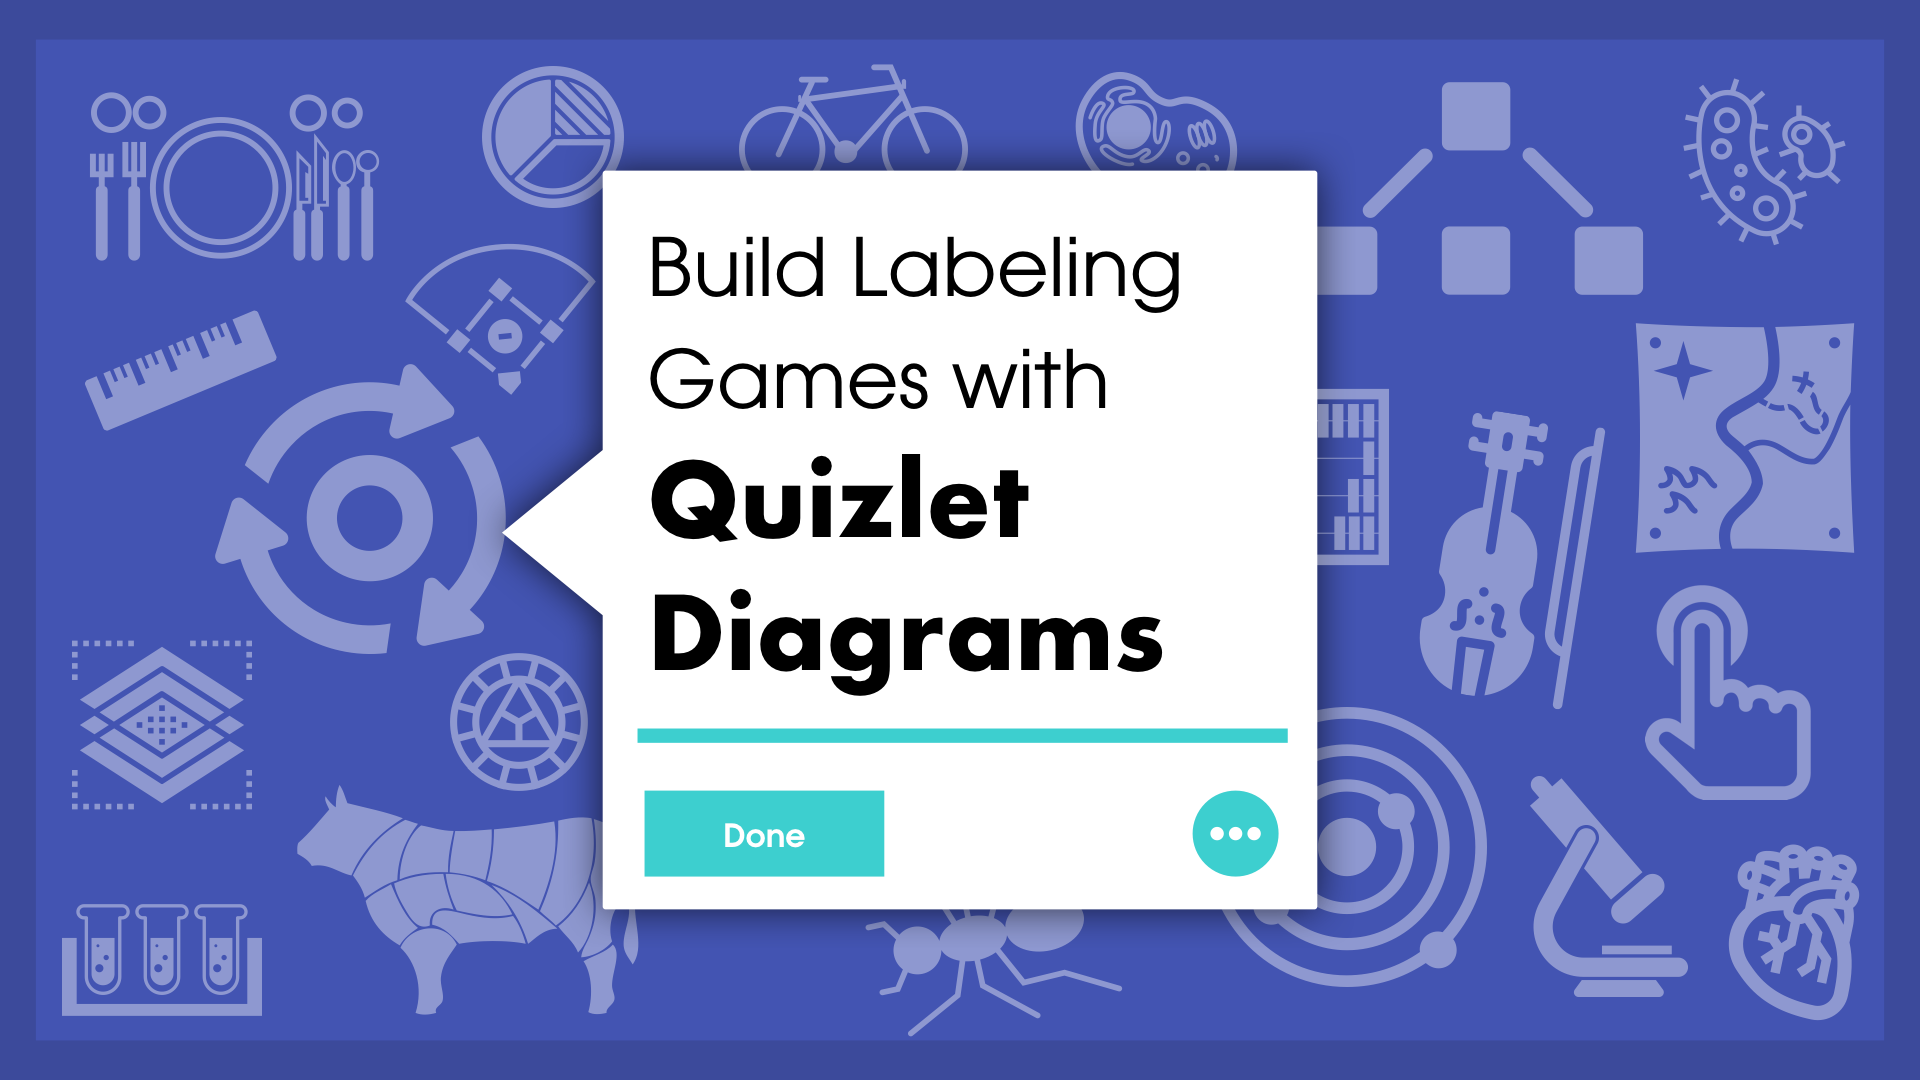 Build Labeling Games with Quizlet Diagram